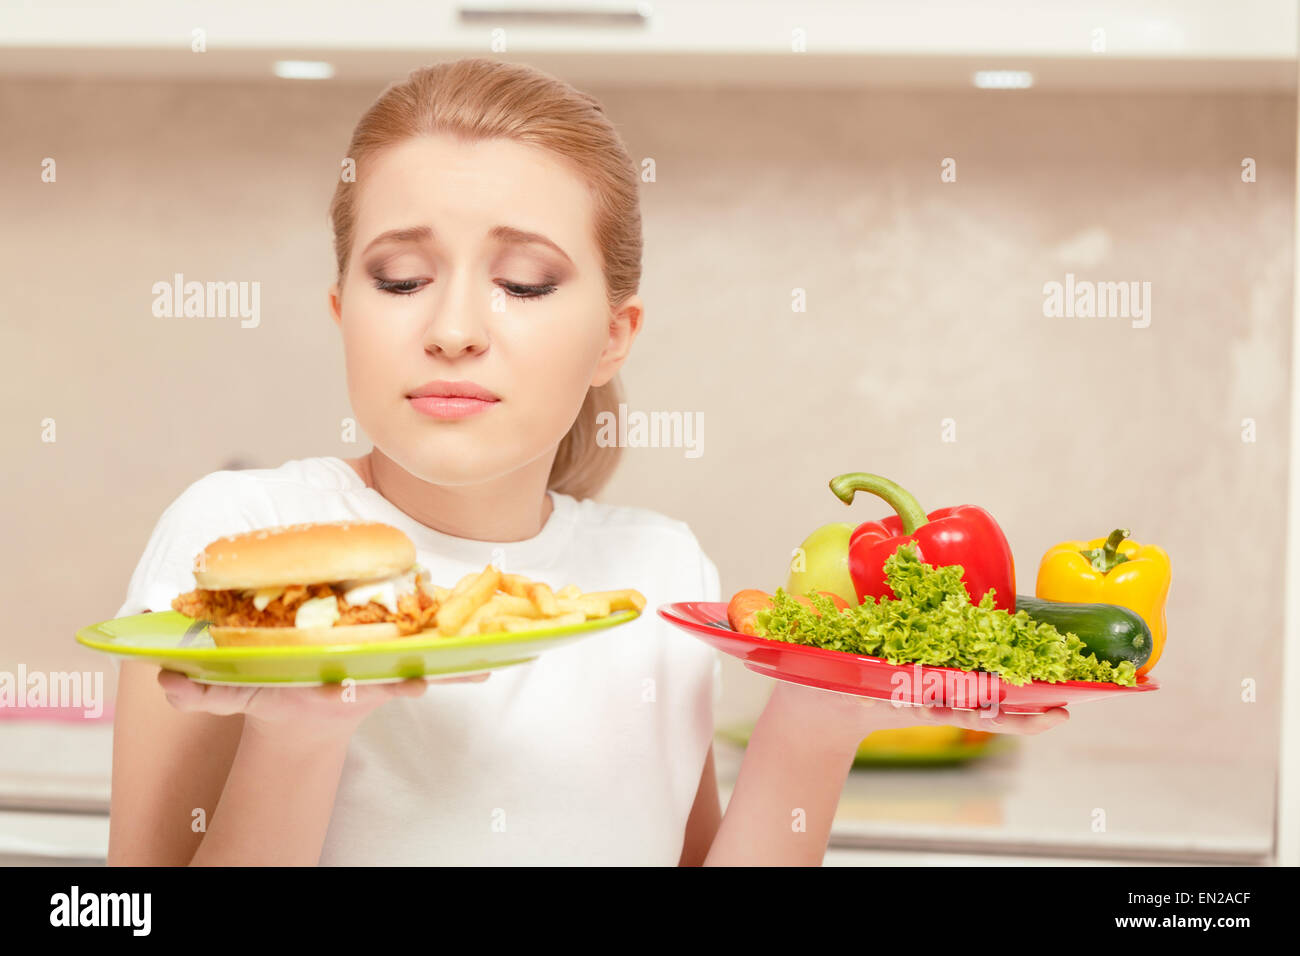 Young woman choosing lunch - Stock Image